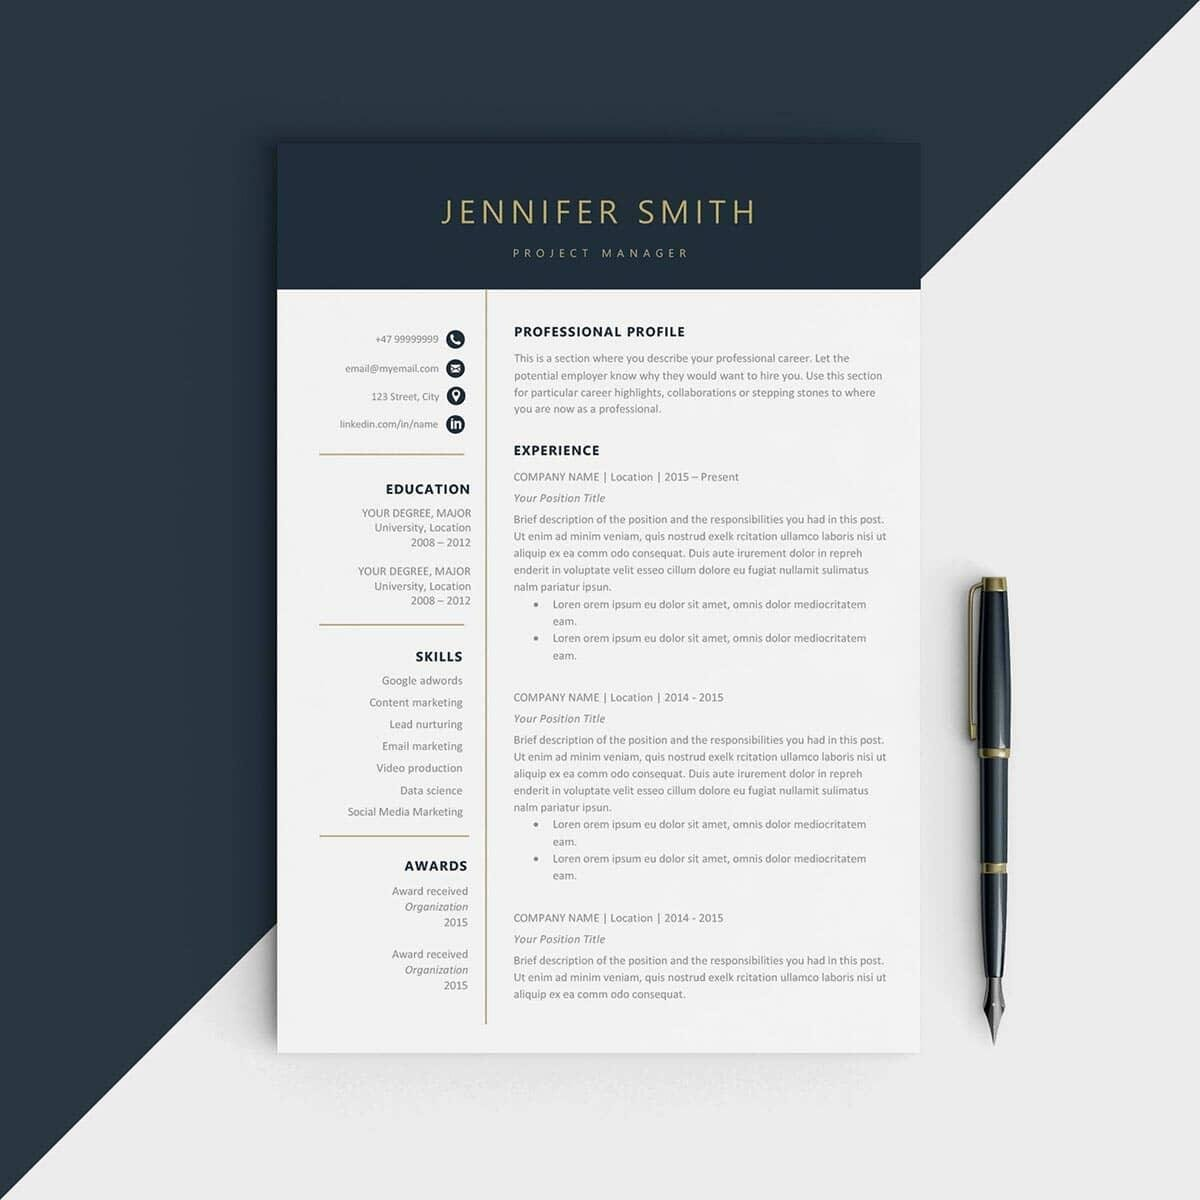 best resume templates for top picks to designs accomplishments high school spa examples Resume Best Resume Designs 2015